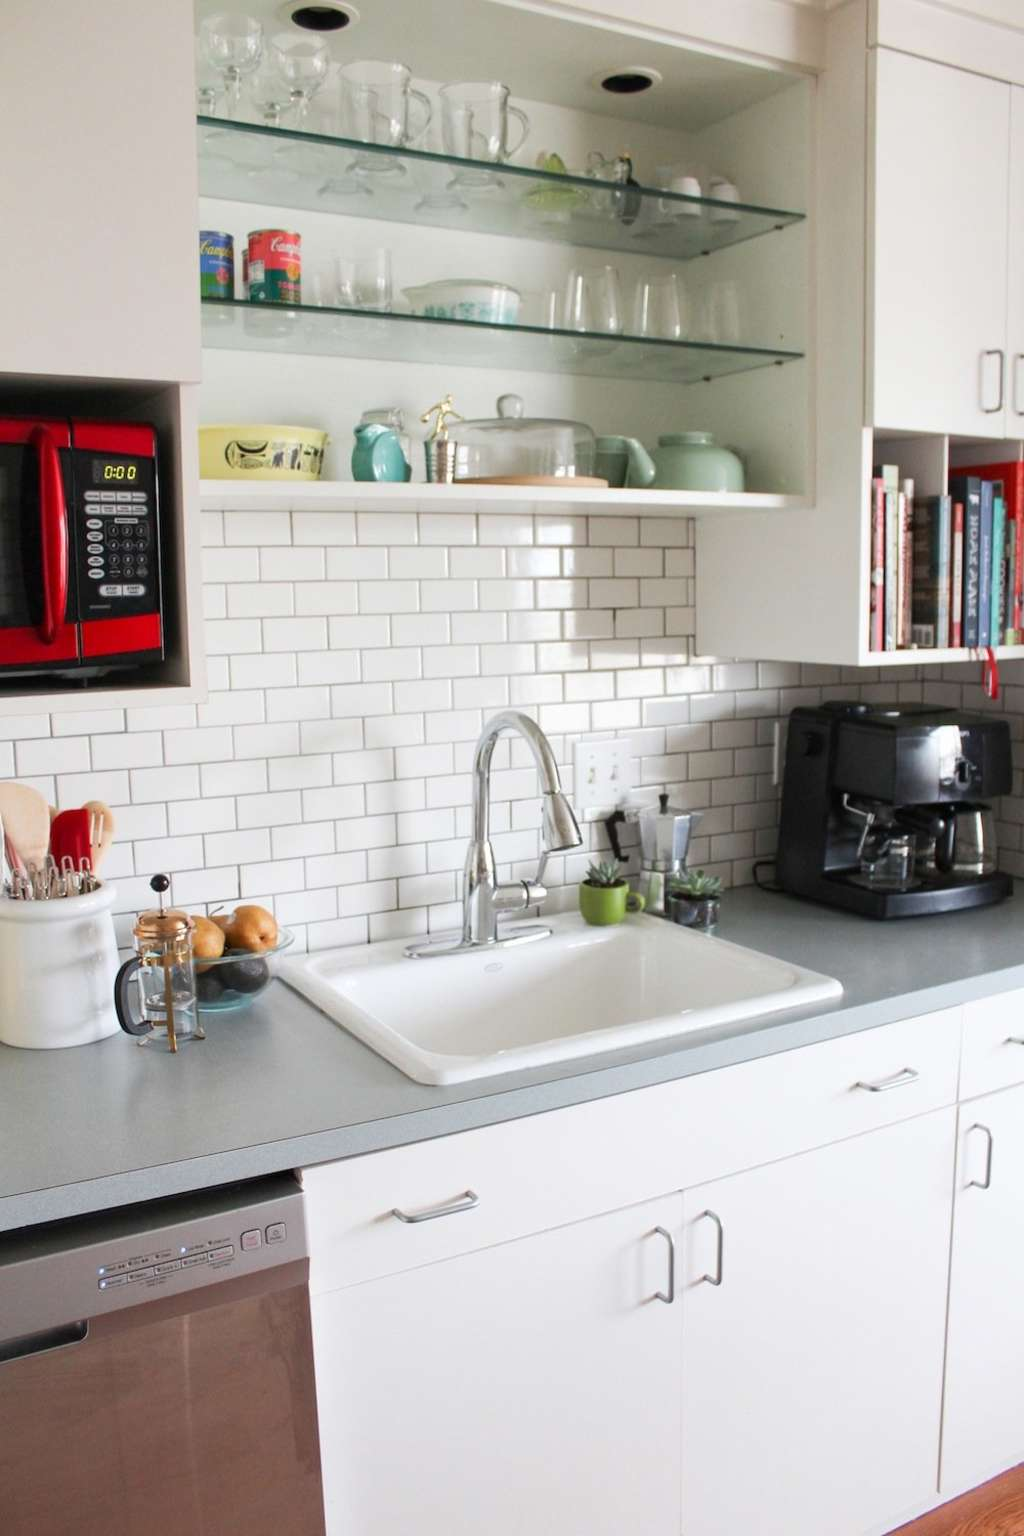 Our Best Tips for Life Without a Dishwasher